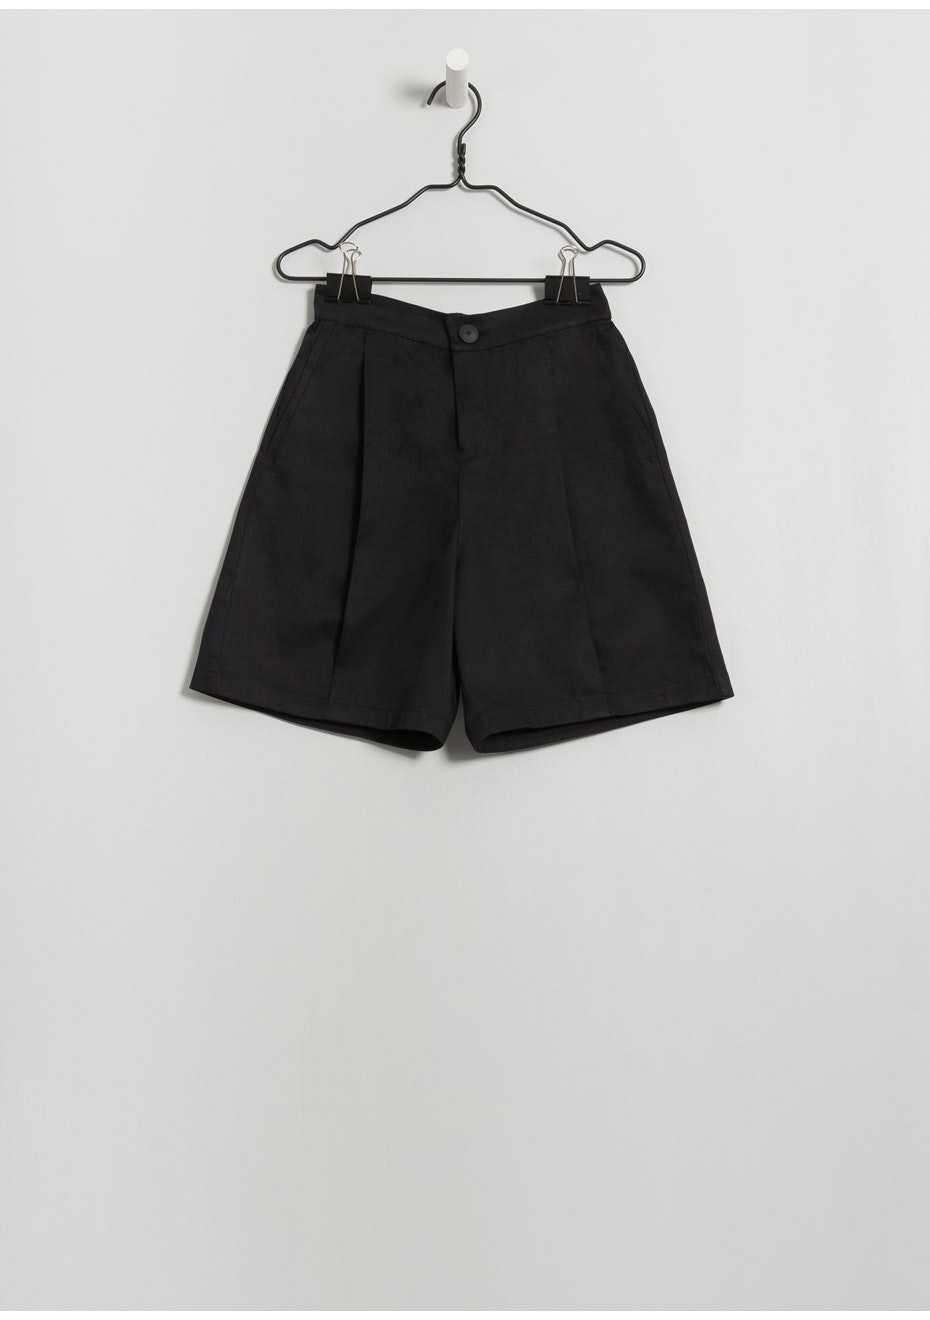 Kowtow - Odds & Ends Shorts - Black